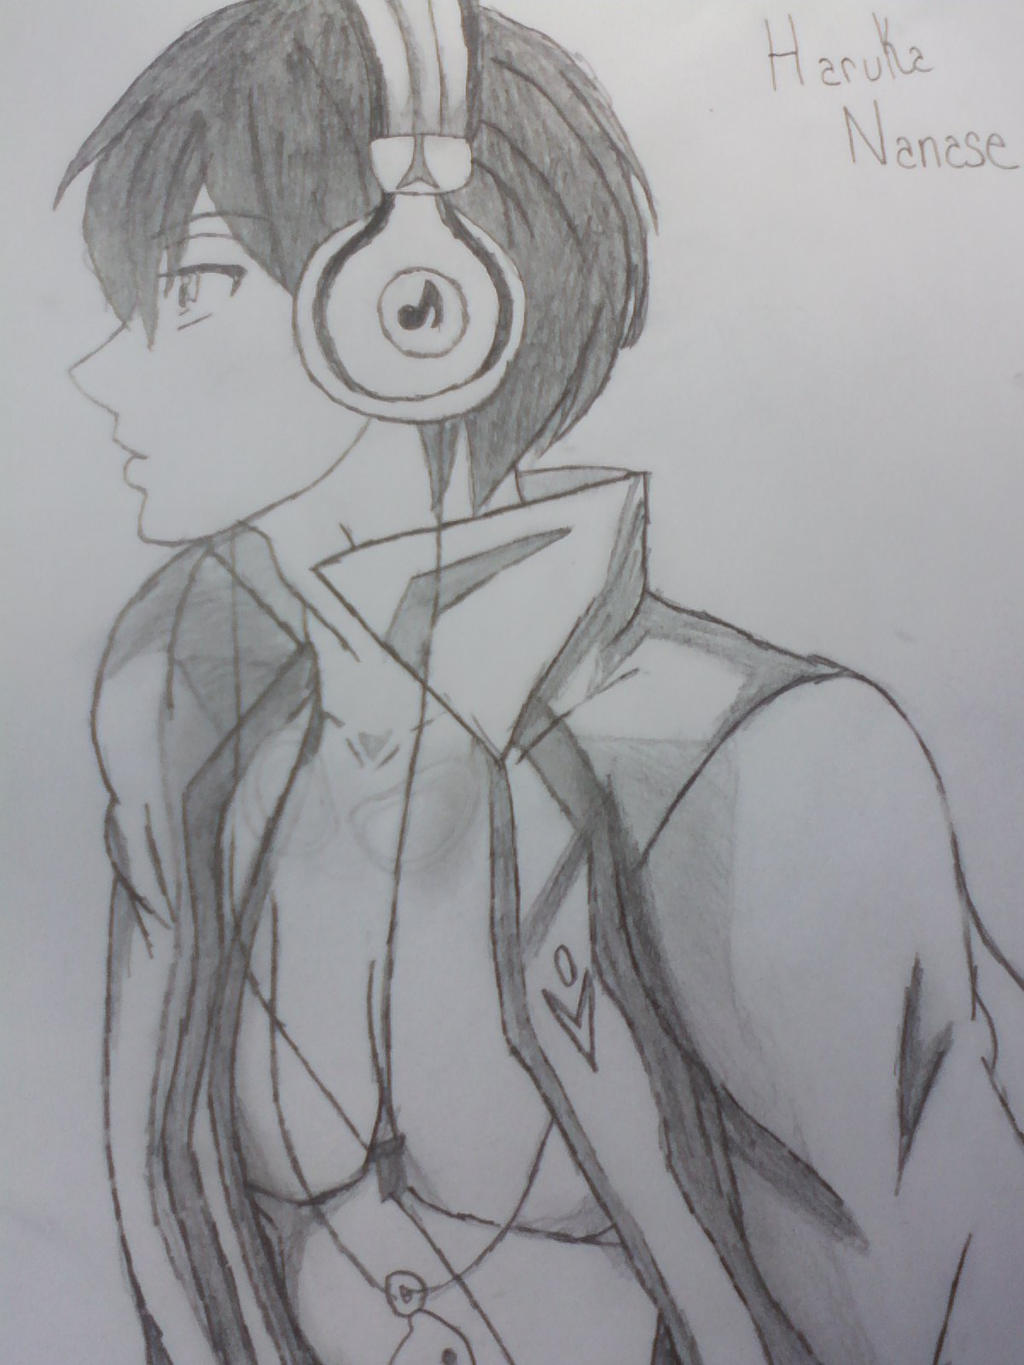 My Drawing Of Haruka Nanase From Free By Lizdragneel On